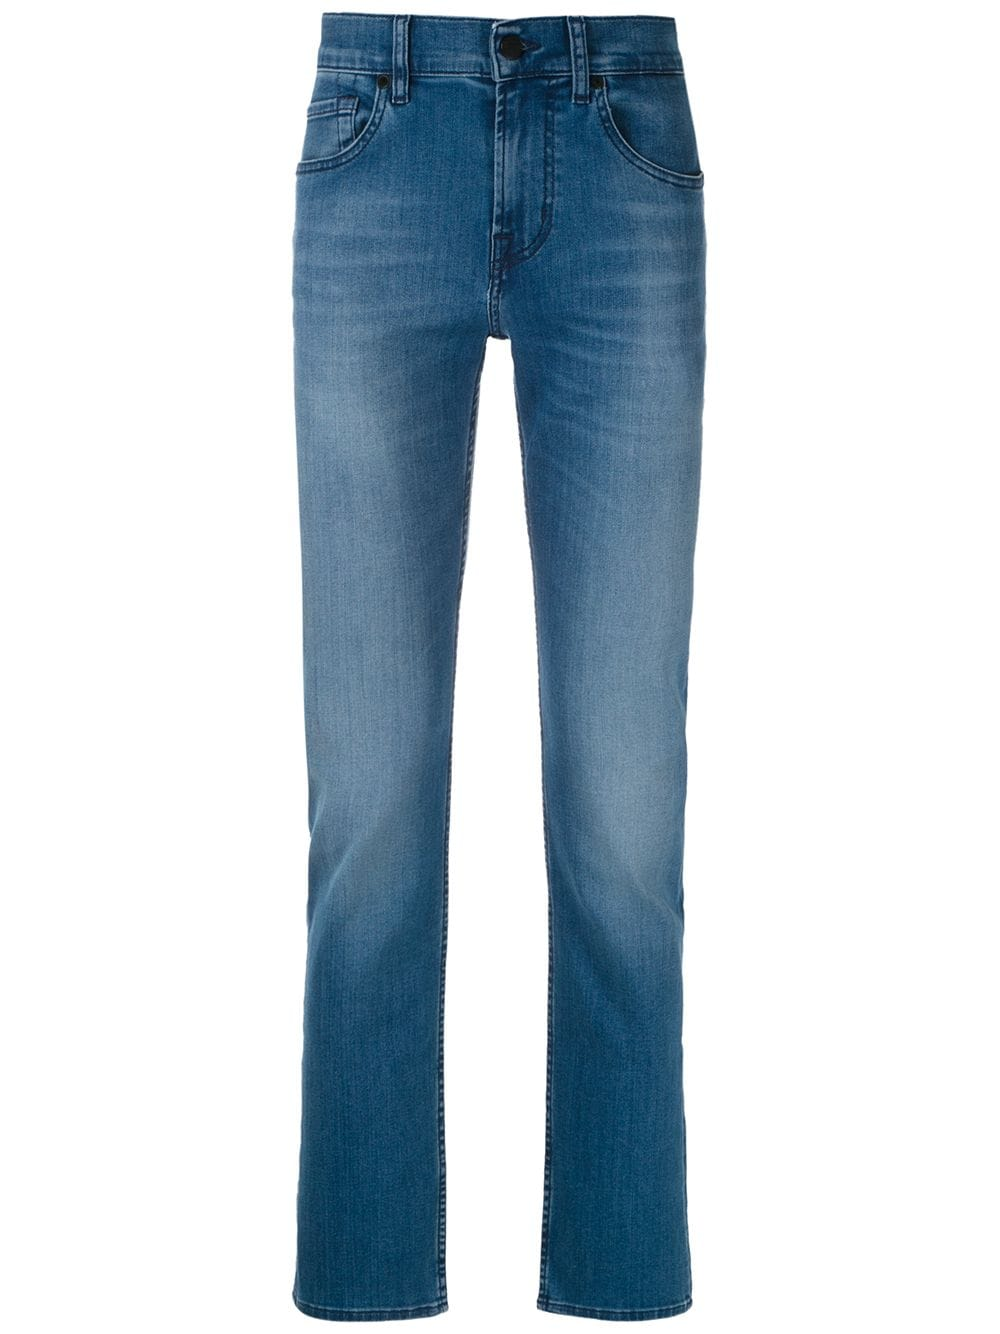 7 For All Mankind   7 For All Mankind джинсы Slimmy Luxe прямого кроя   Clouty